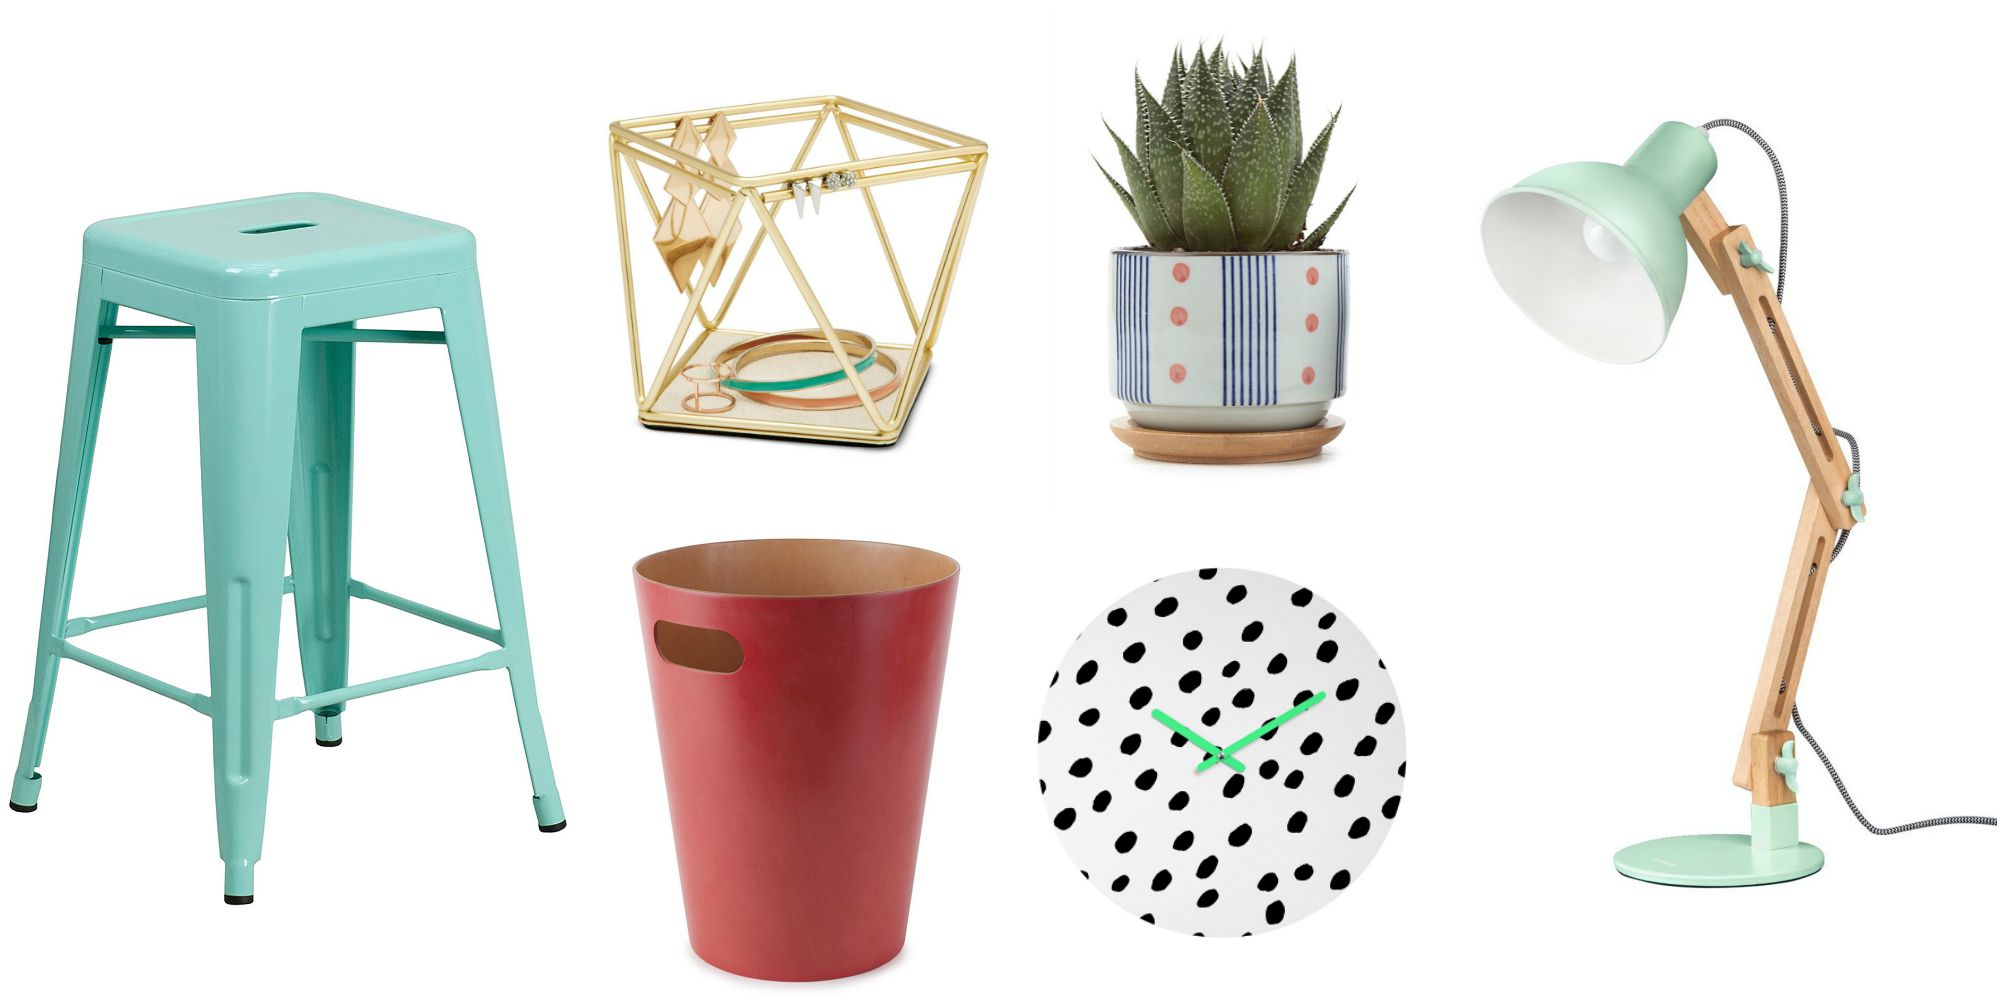 25 Cheap Home Decor Ideas Inexpensive Accessories For Your House